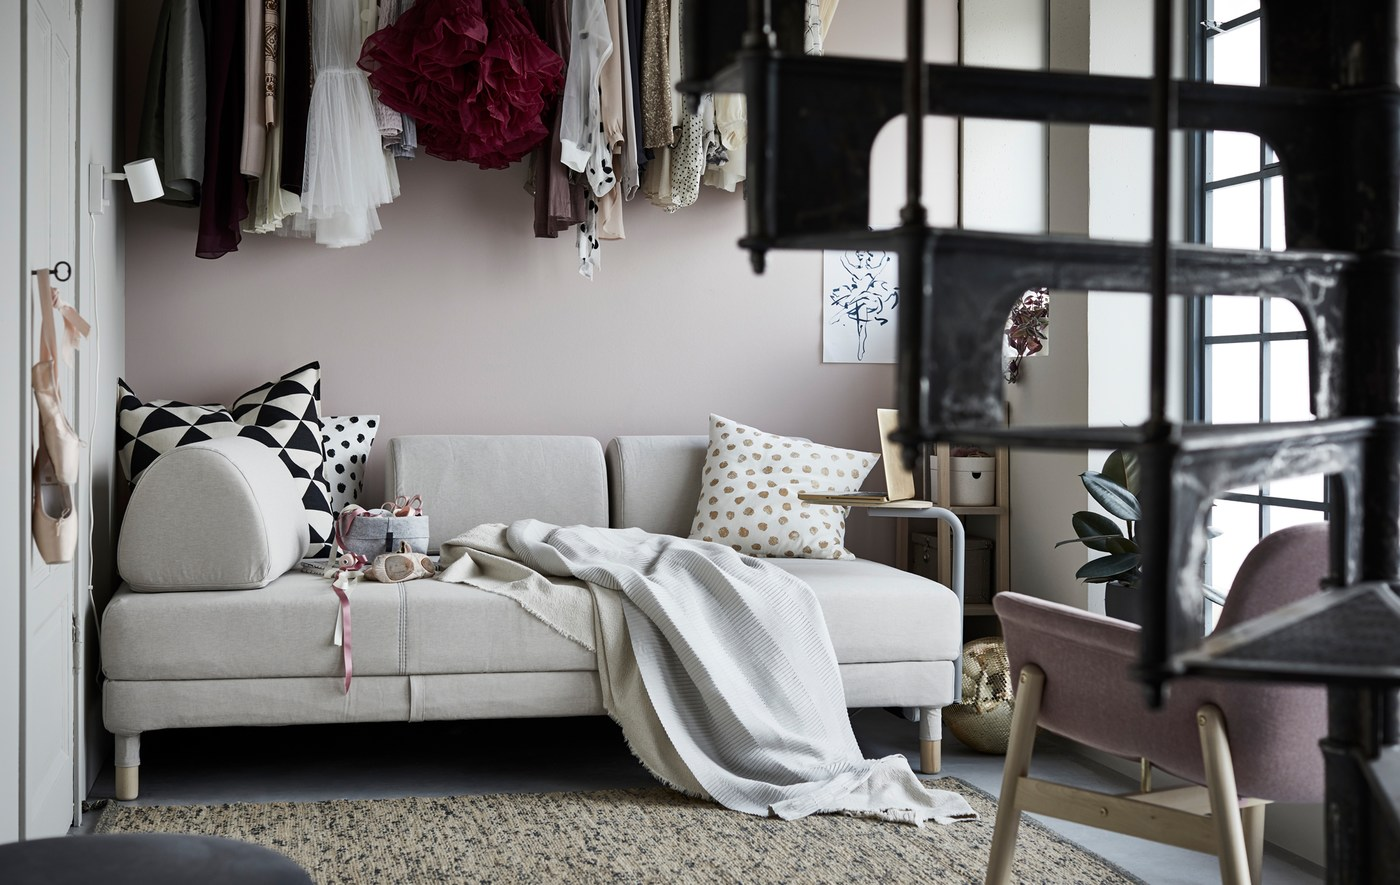 With an IKEA FLOTTEBO sleeper sofa, your living space will have a comfortable and and convenient center point. No matter activities you enjoy.